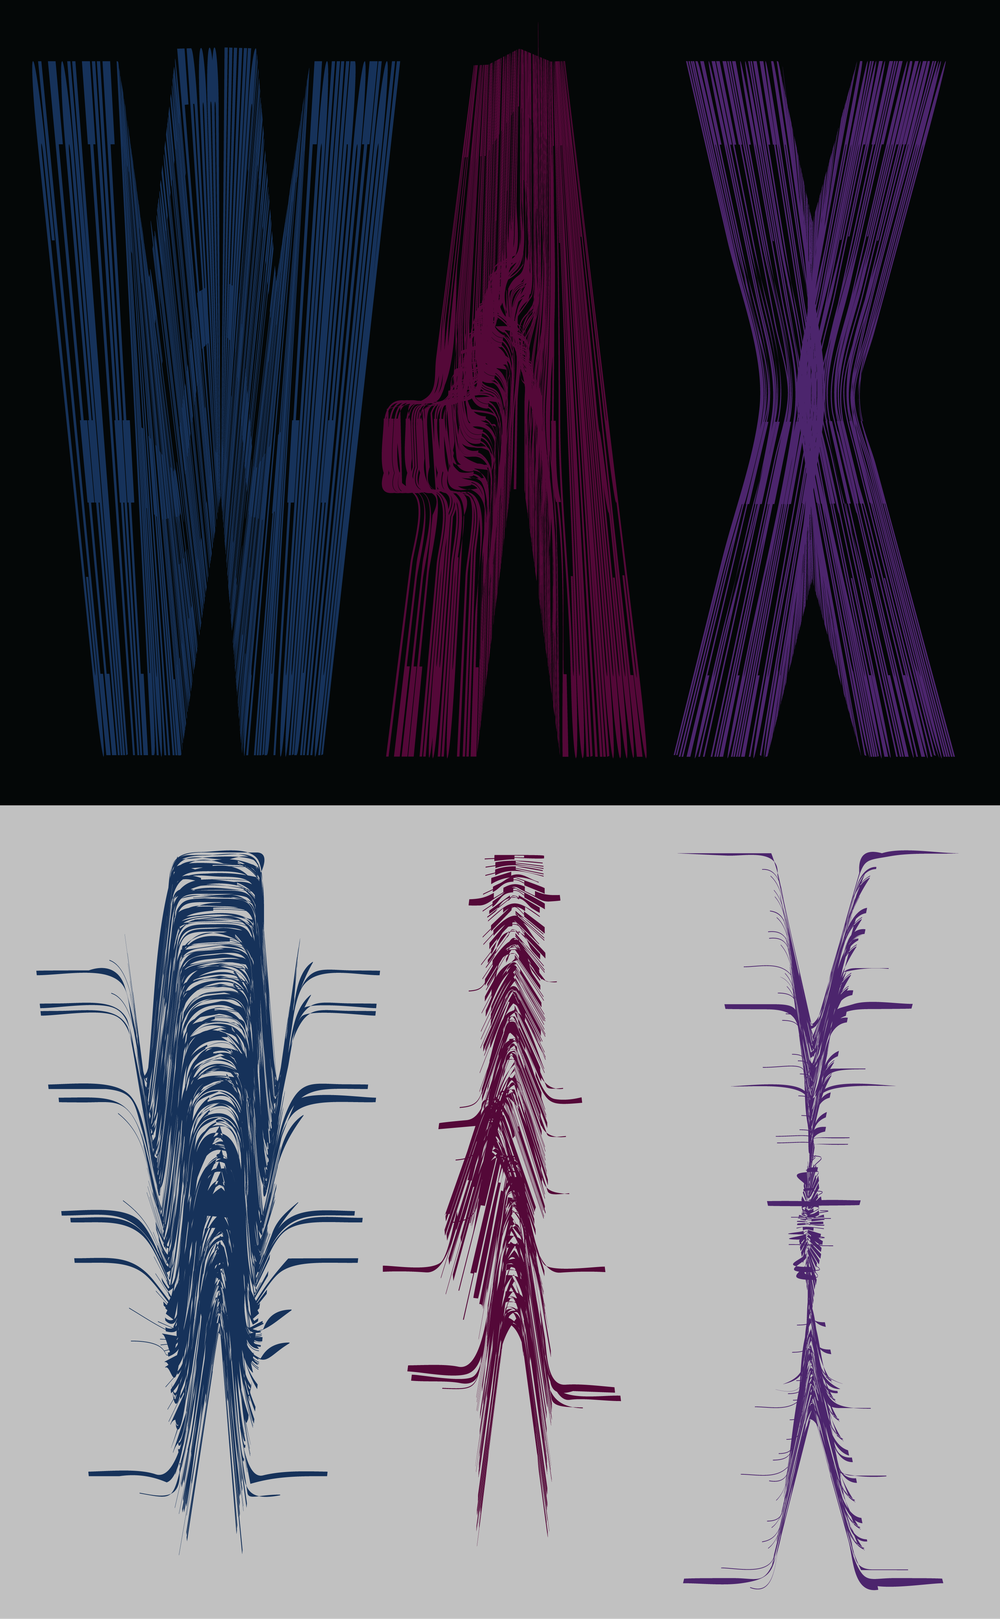 Wax - from Word